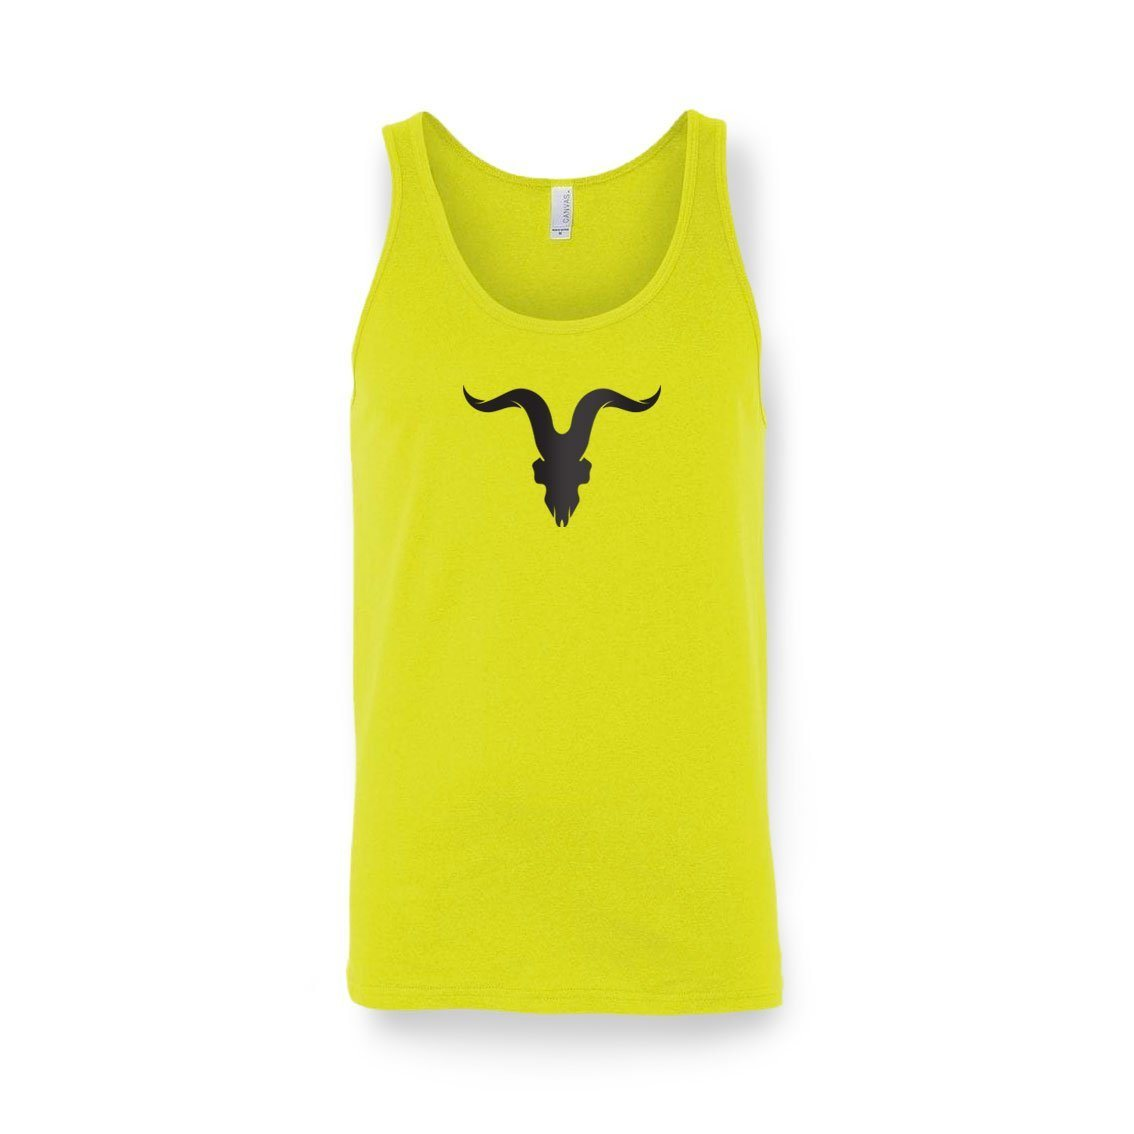 'Ready for Summer' Tanks - Neon Yellow with Black Logo